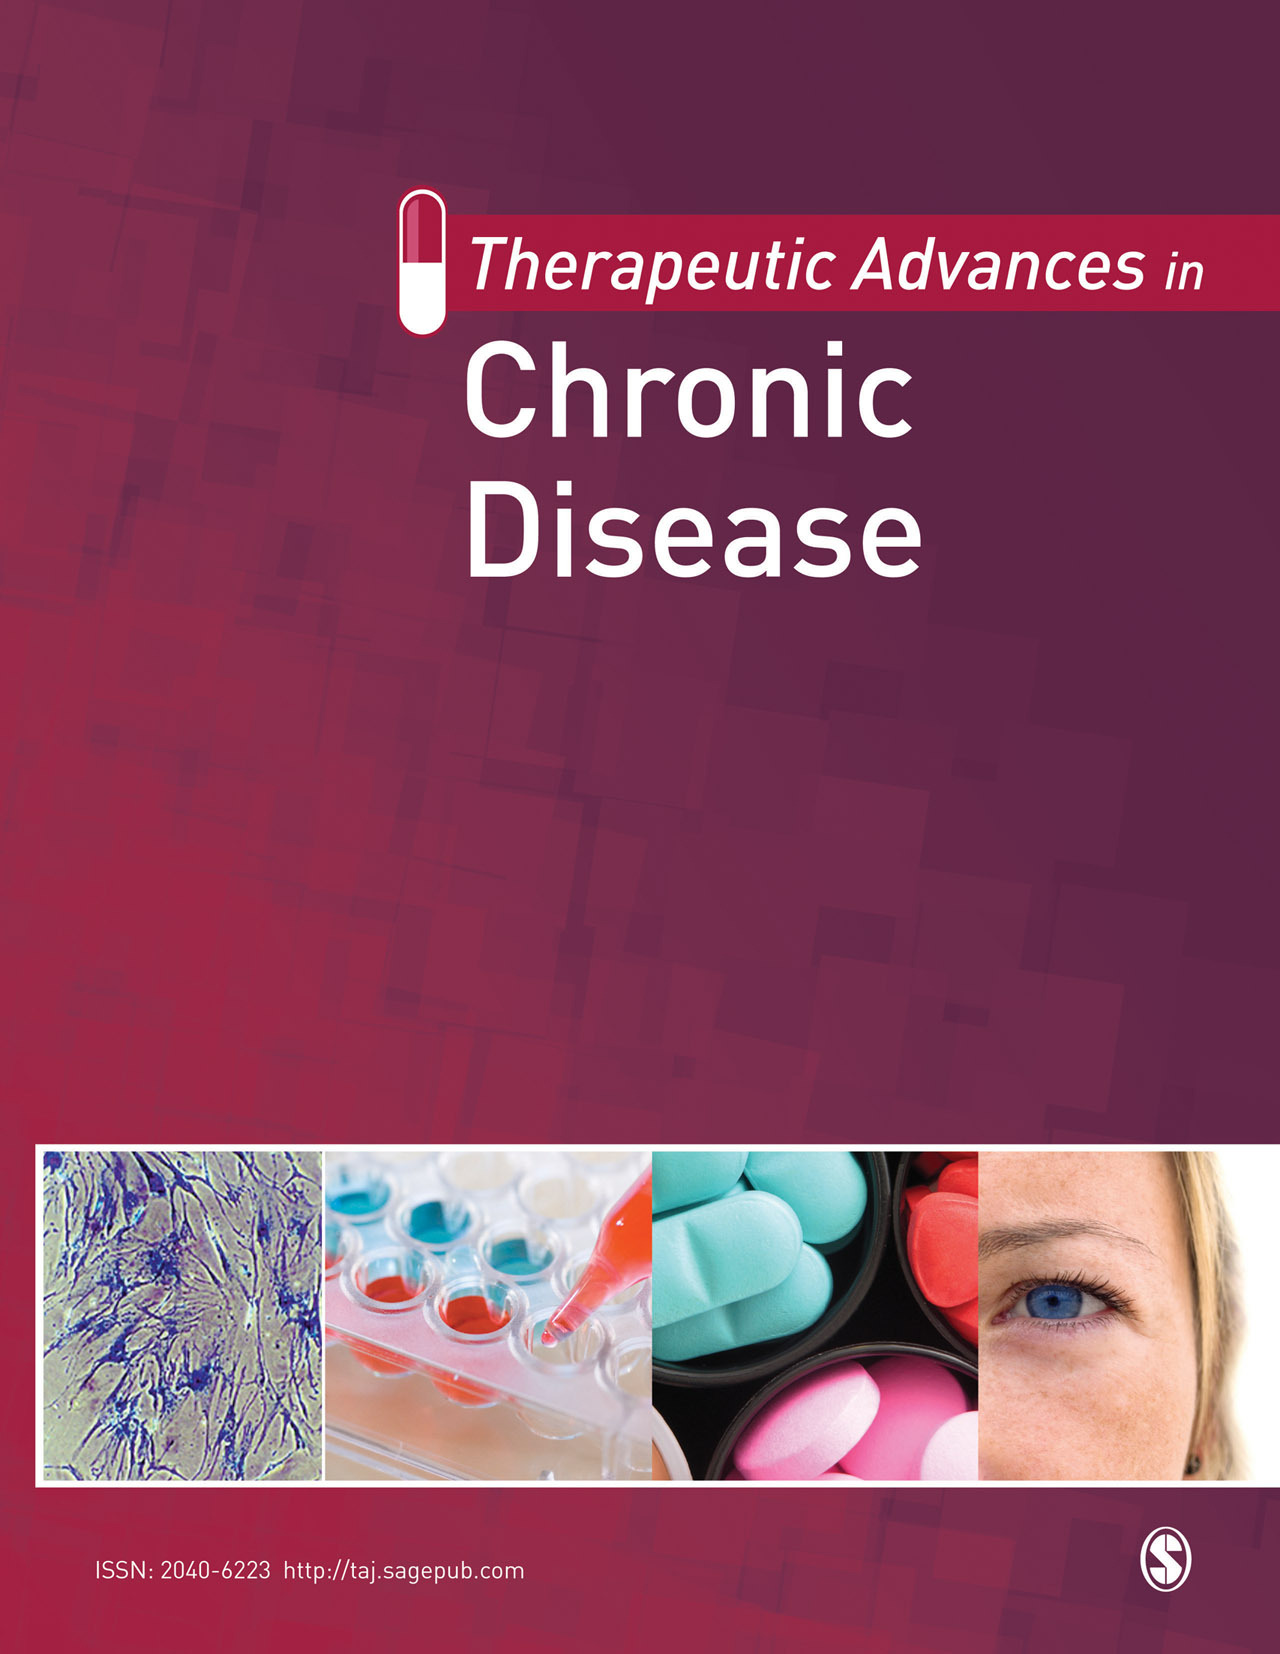 Therapeutic Advances in Chronic Disease